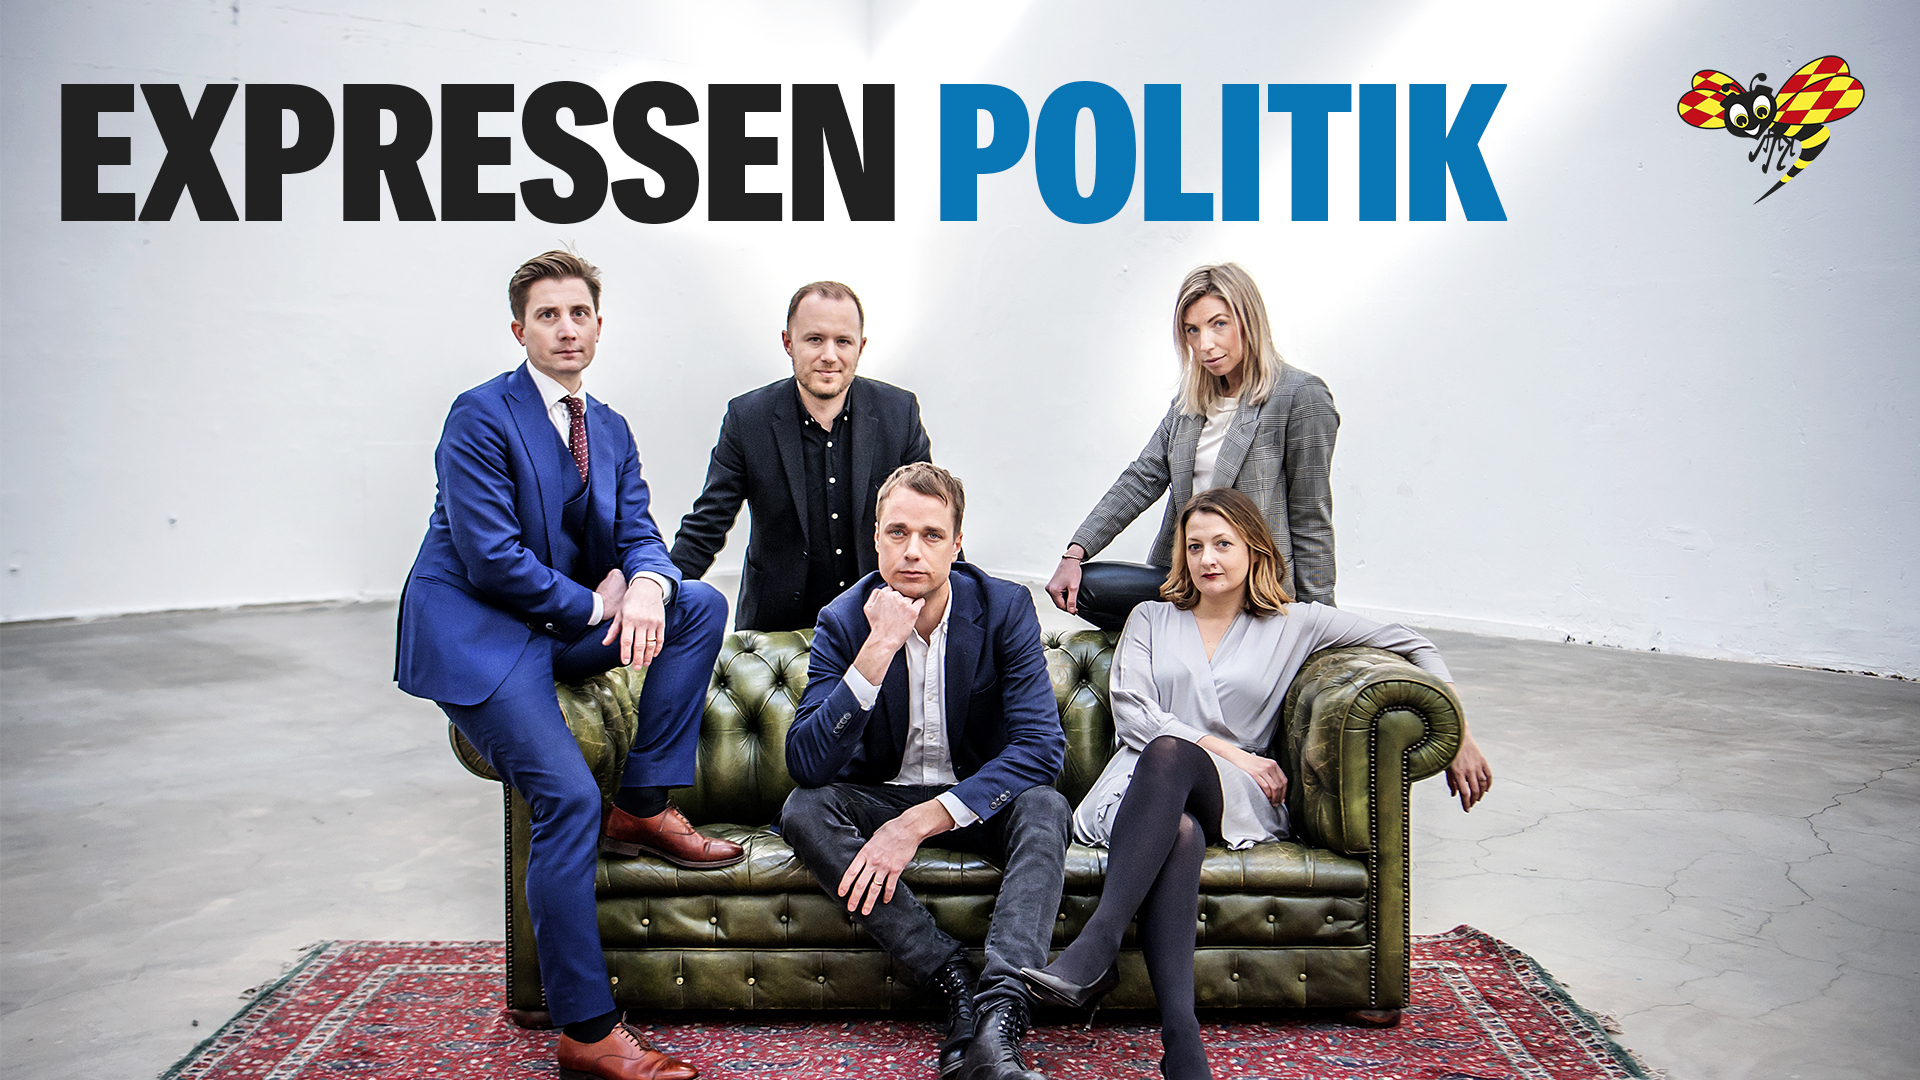 MODERN POLITICAL REPORTING – building a fast growing and lojal community around our coverage of Swedish politics